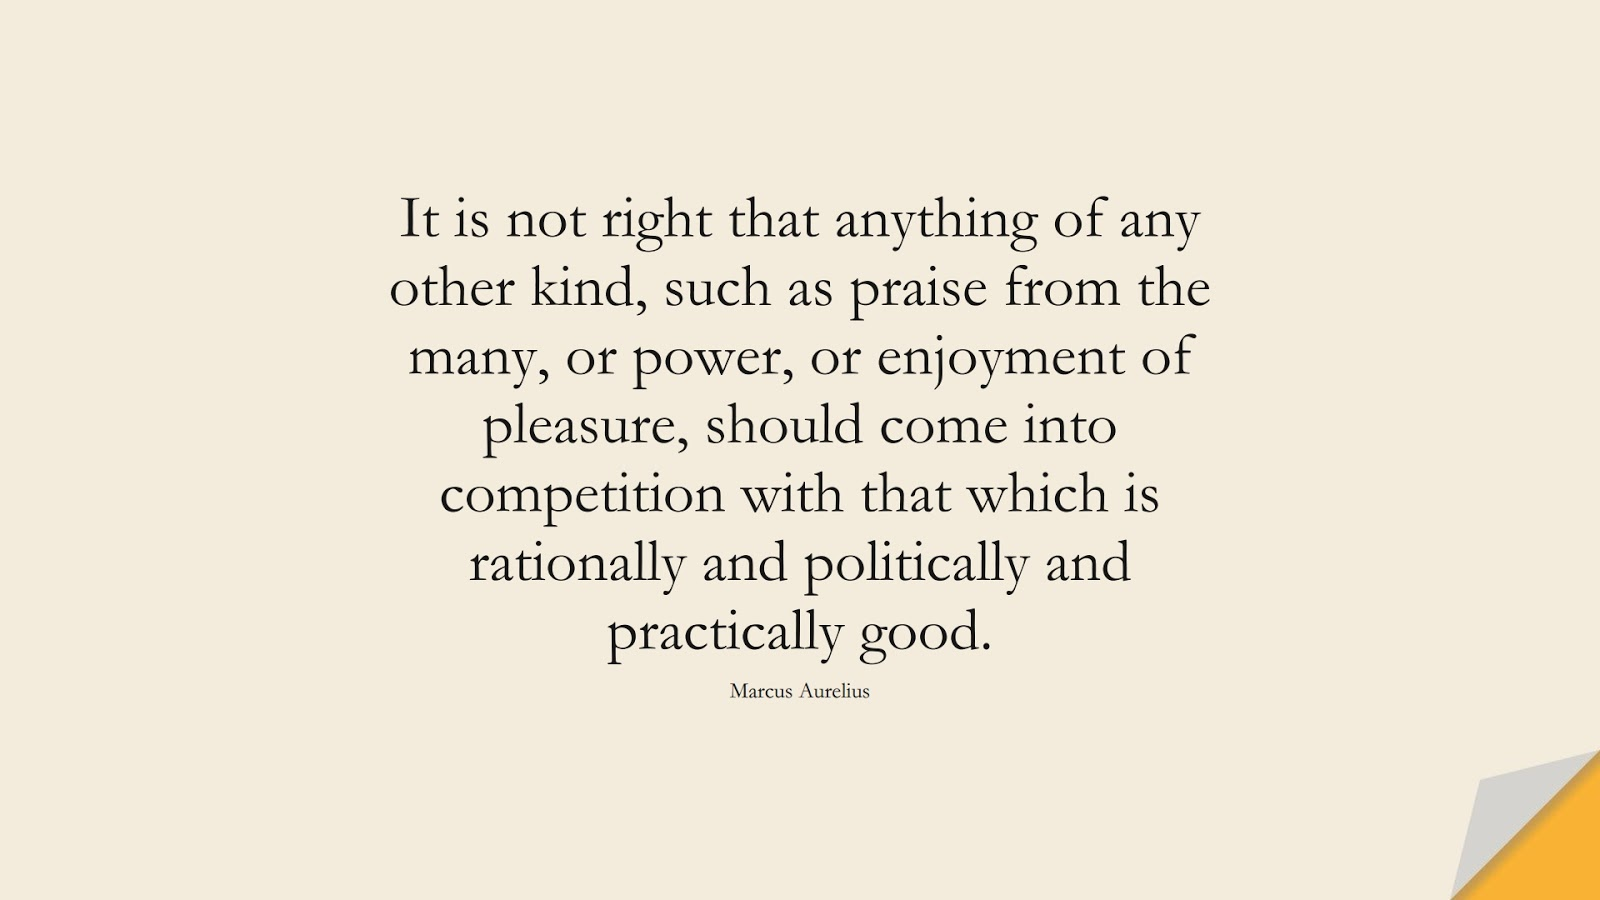 It is not right that anything of any other kind, such as praise from the many, or power, or enjoyment of pleasure, should come into competition with that which is rationally and politically and practically good. (Marcus Aurelius);  #MarcusAureliusQuotes